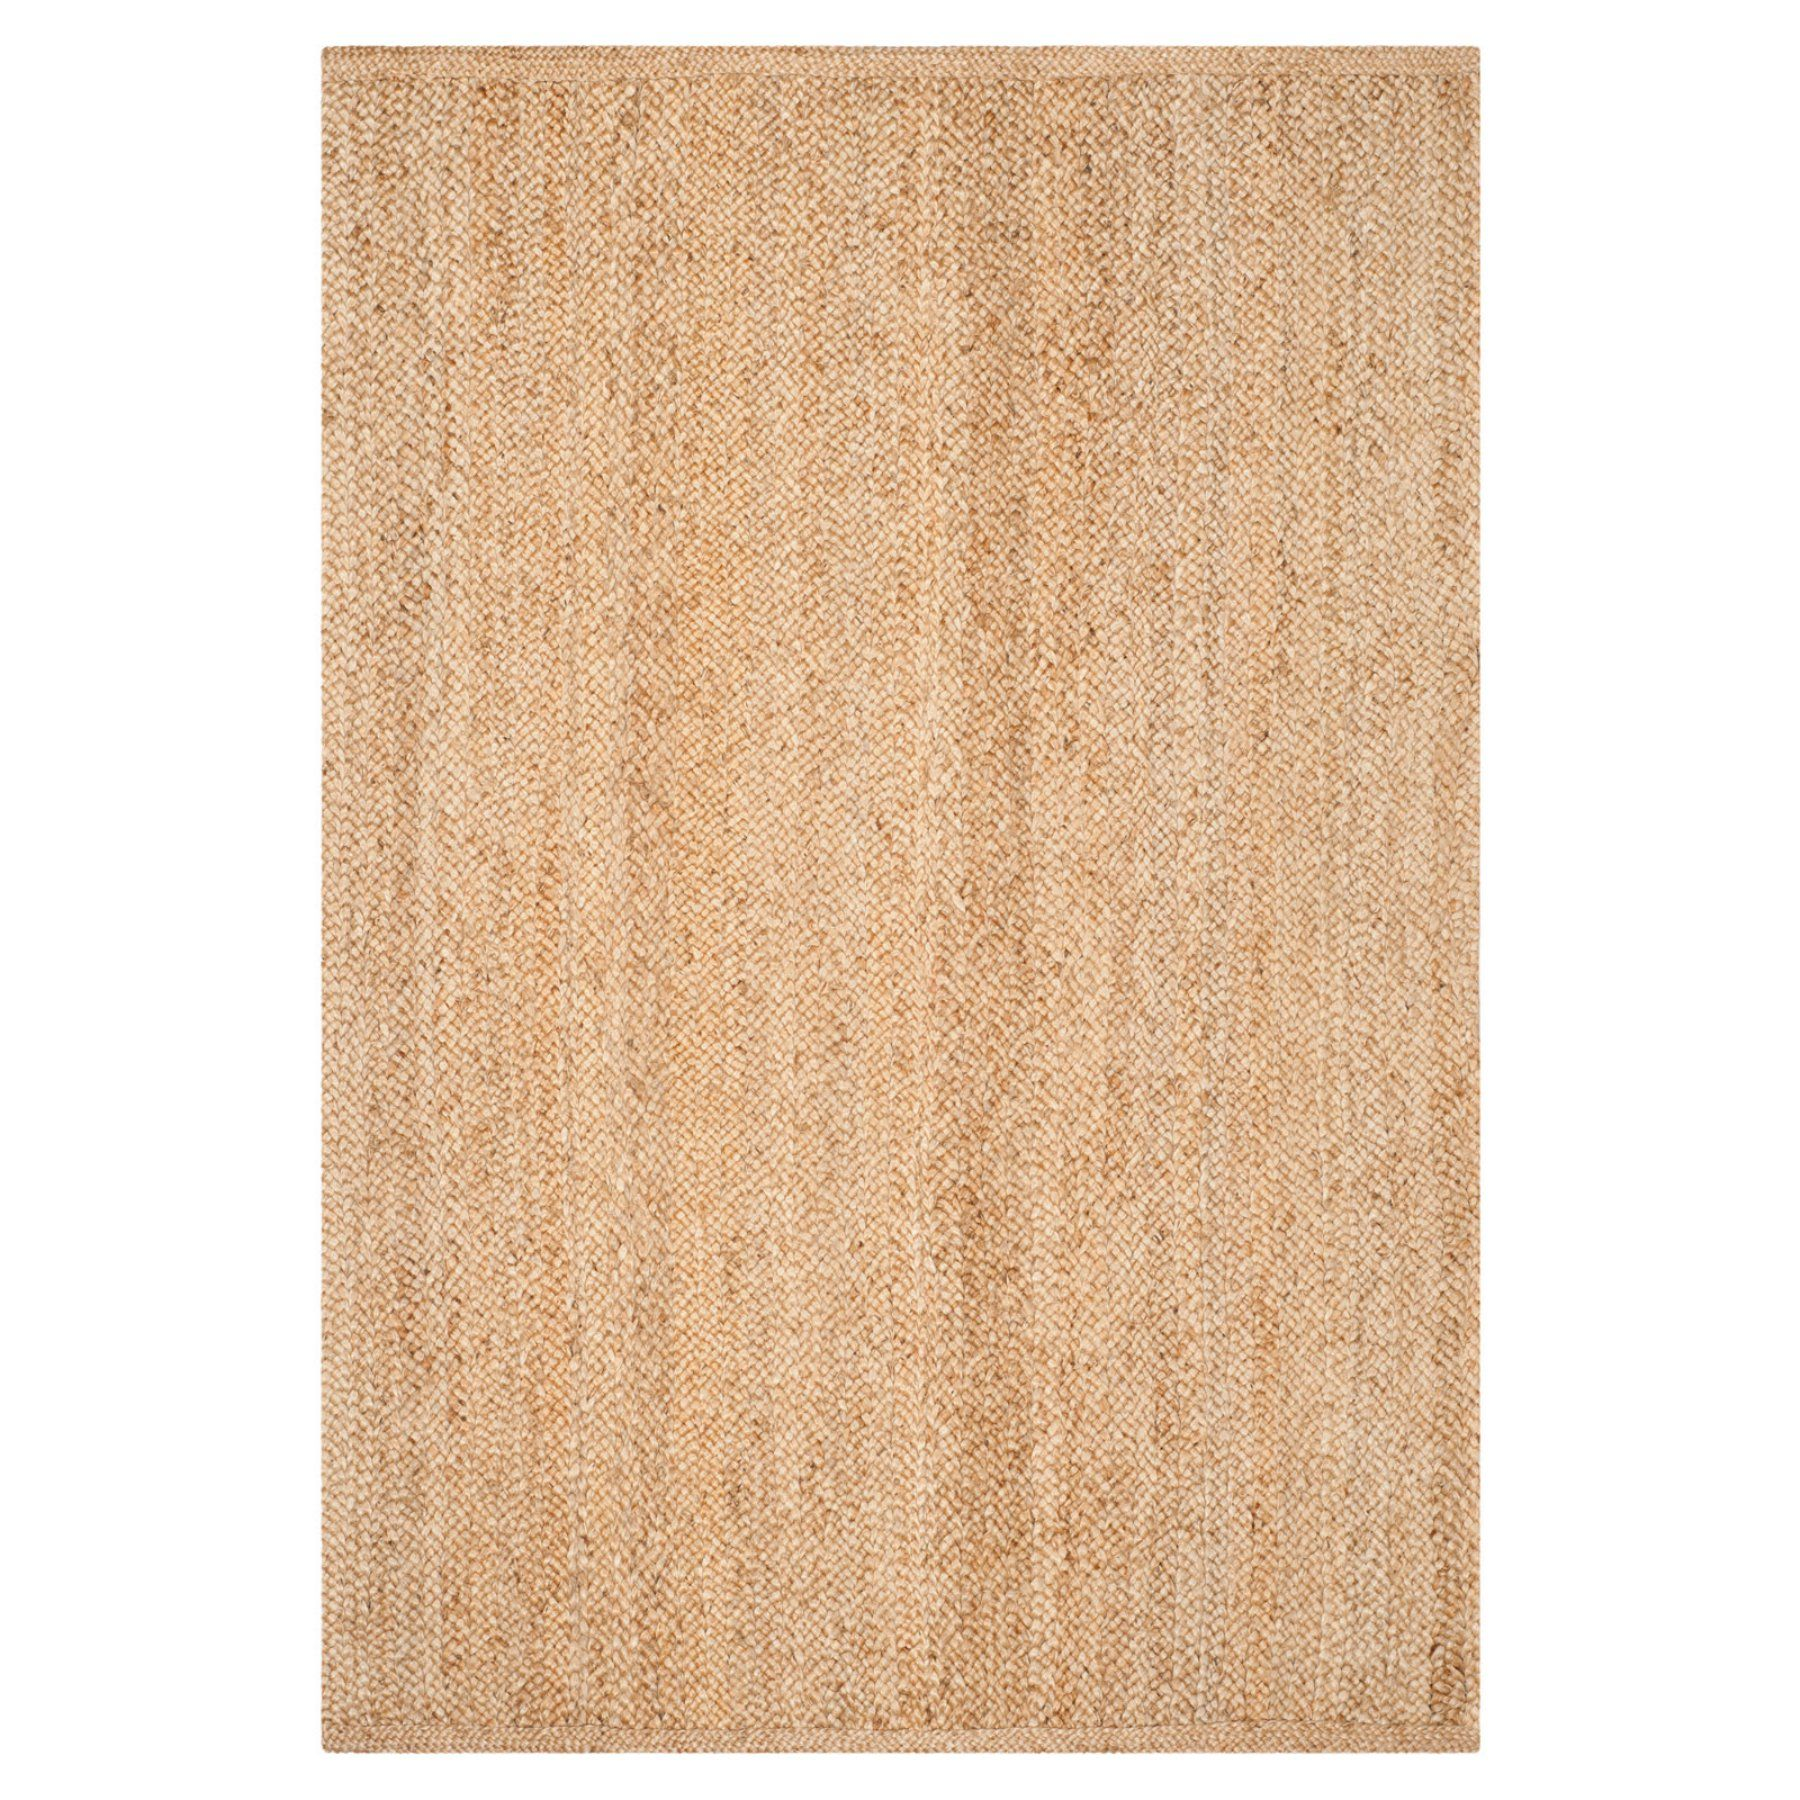 Safavieh NF461A Braided Natural Fiber Indoor Rug - NF461A-212